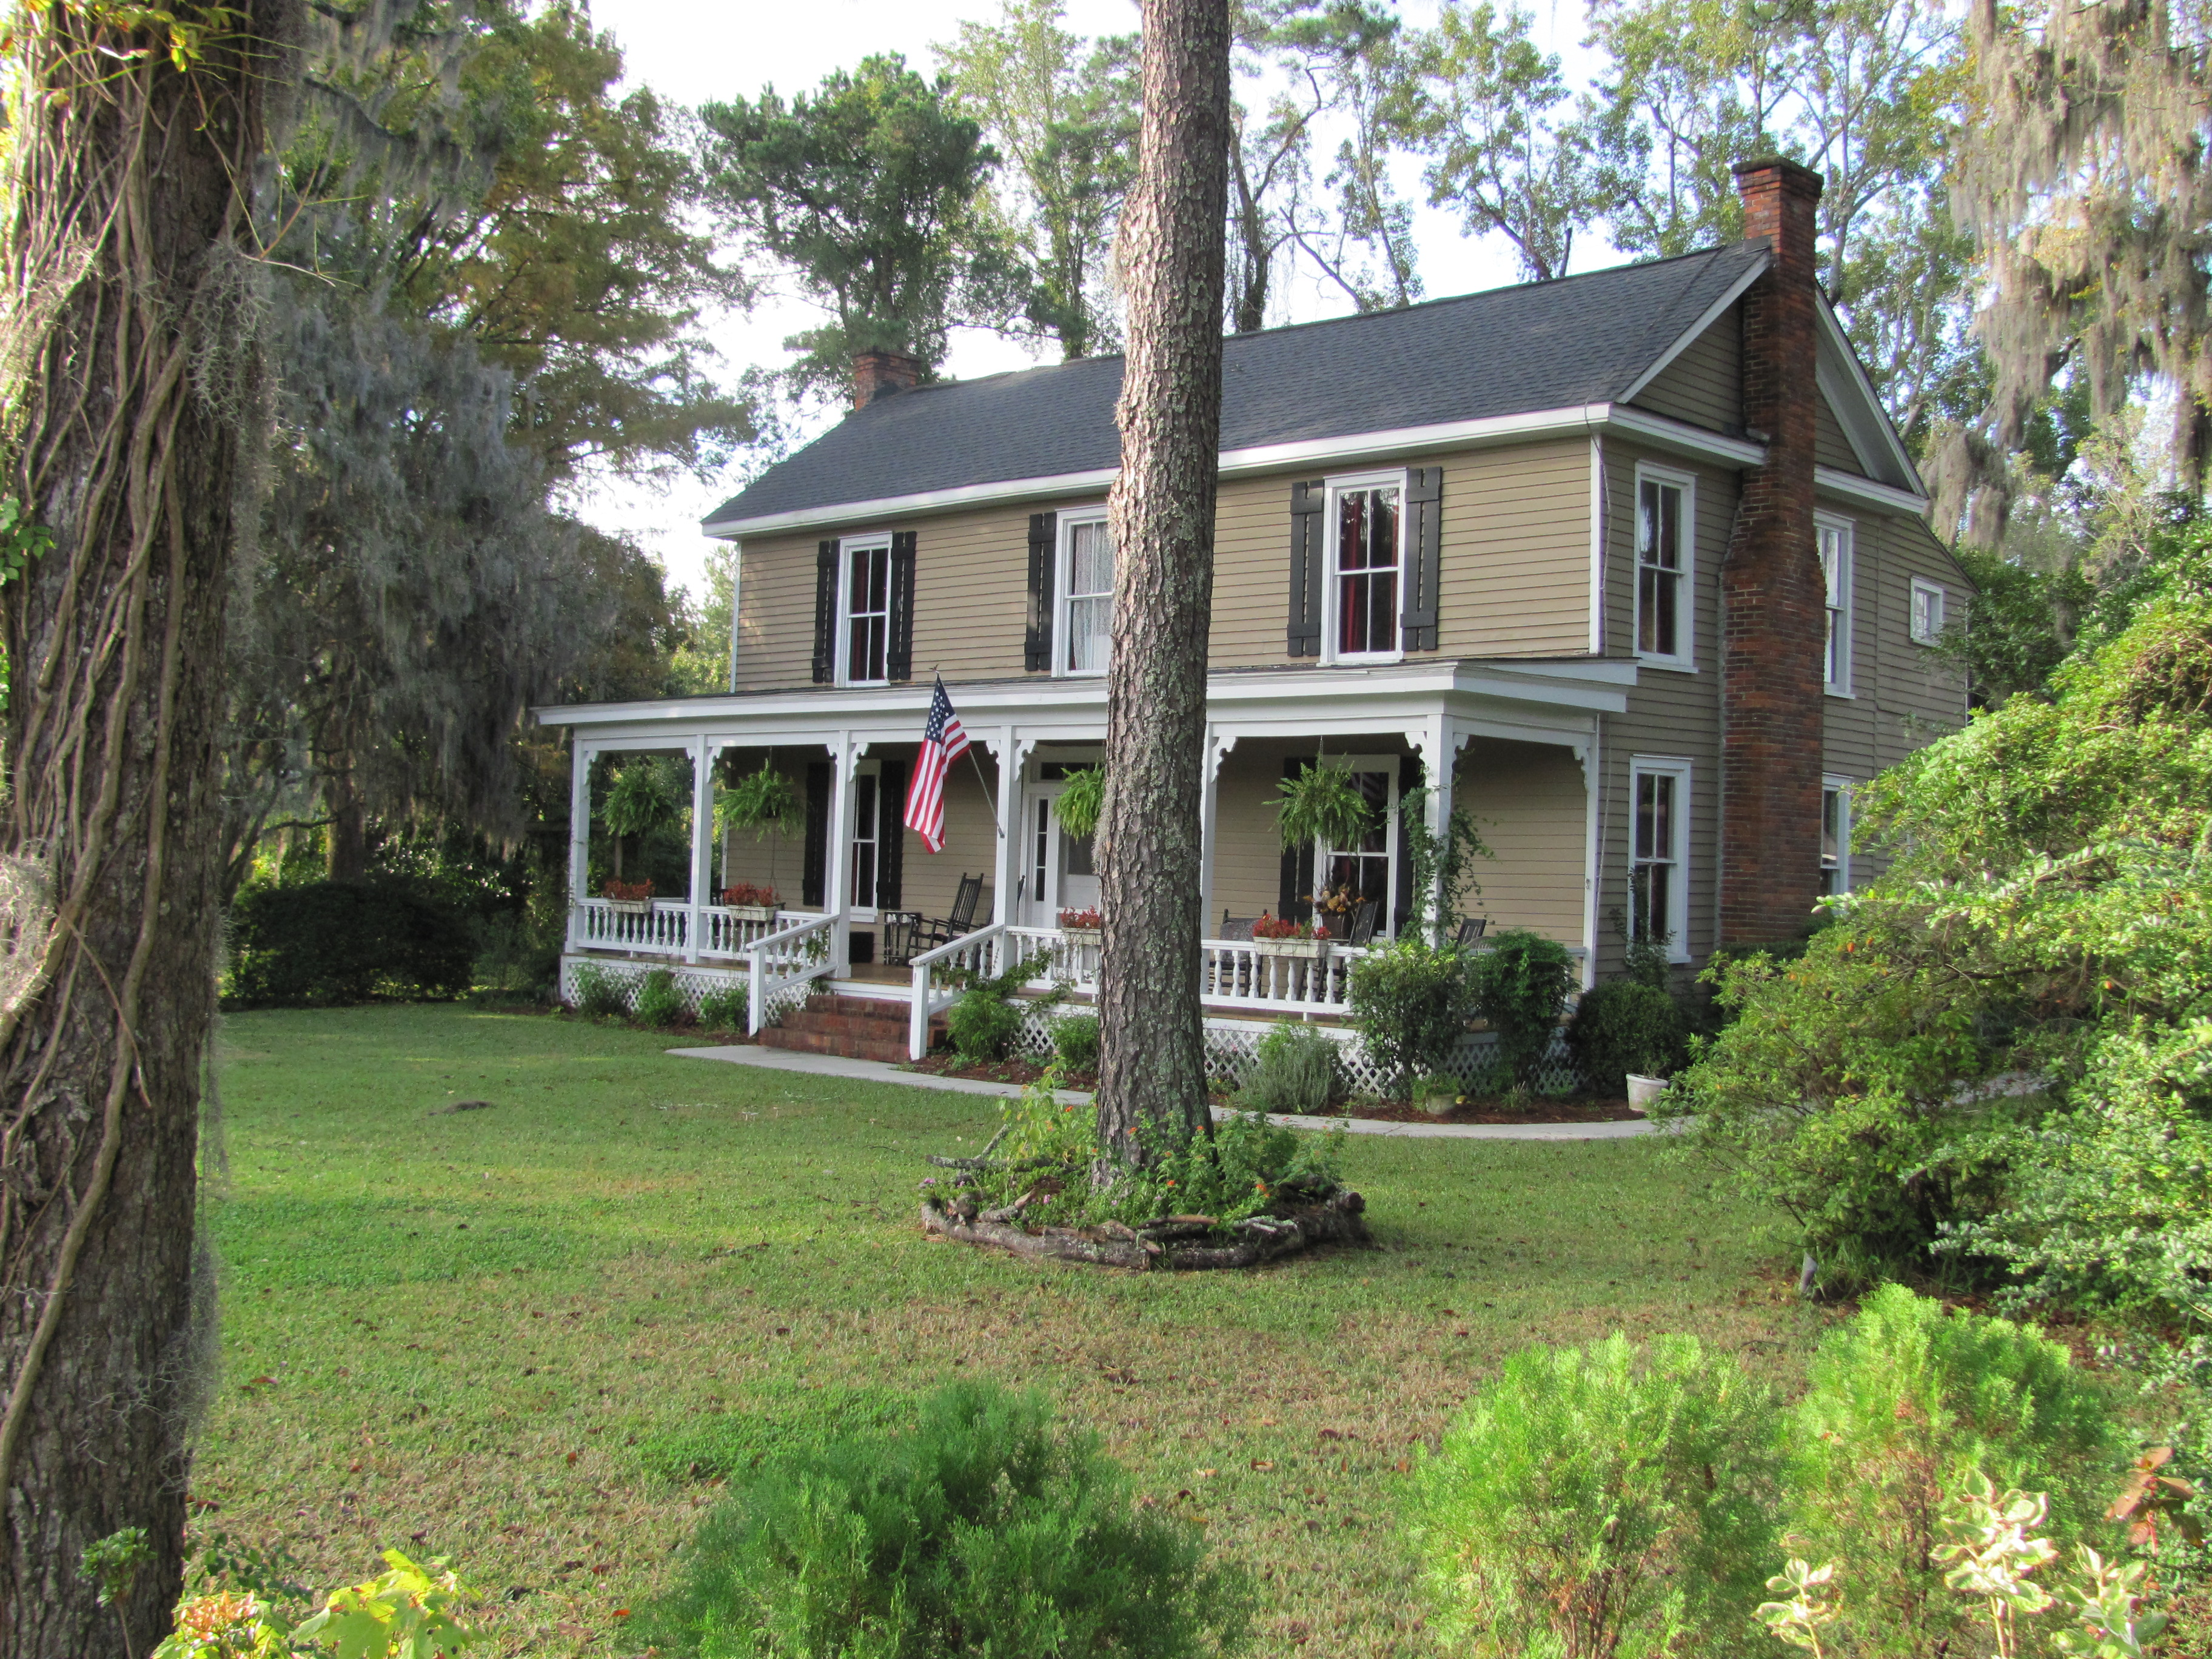 myrtle ocean properties lakes beach cottage inn section sc cottages holiday gallery site homeowners